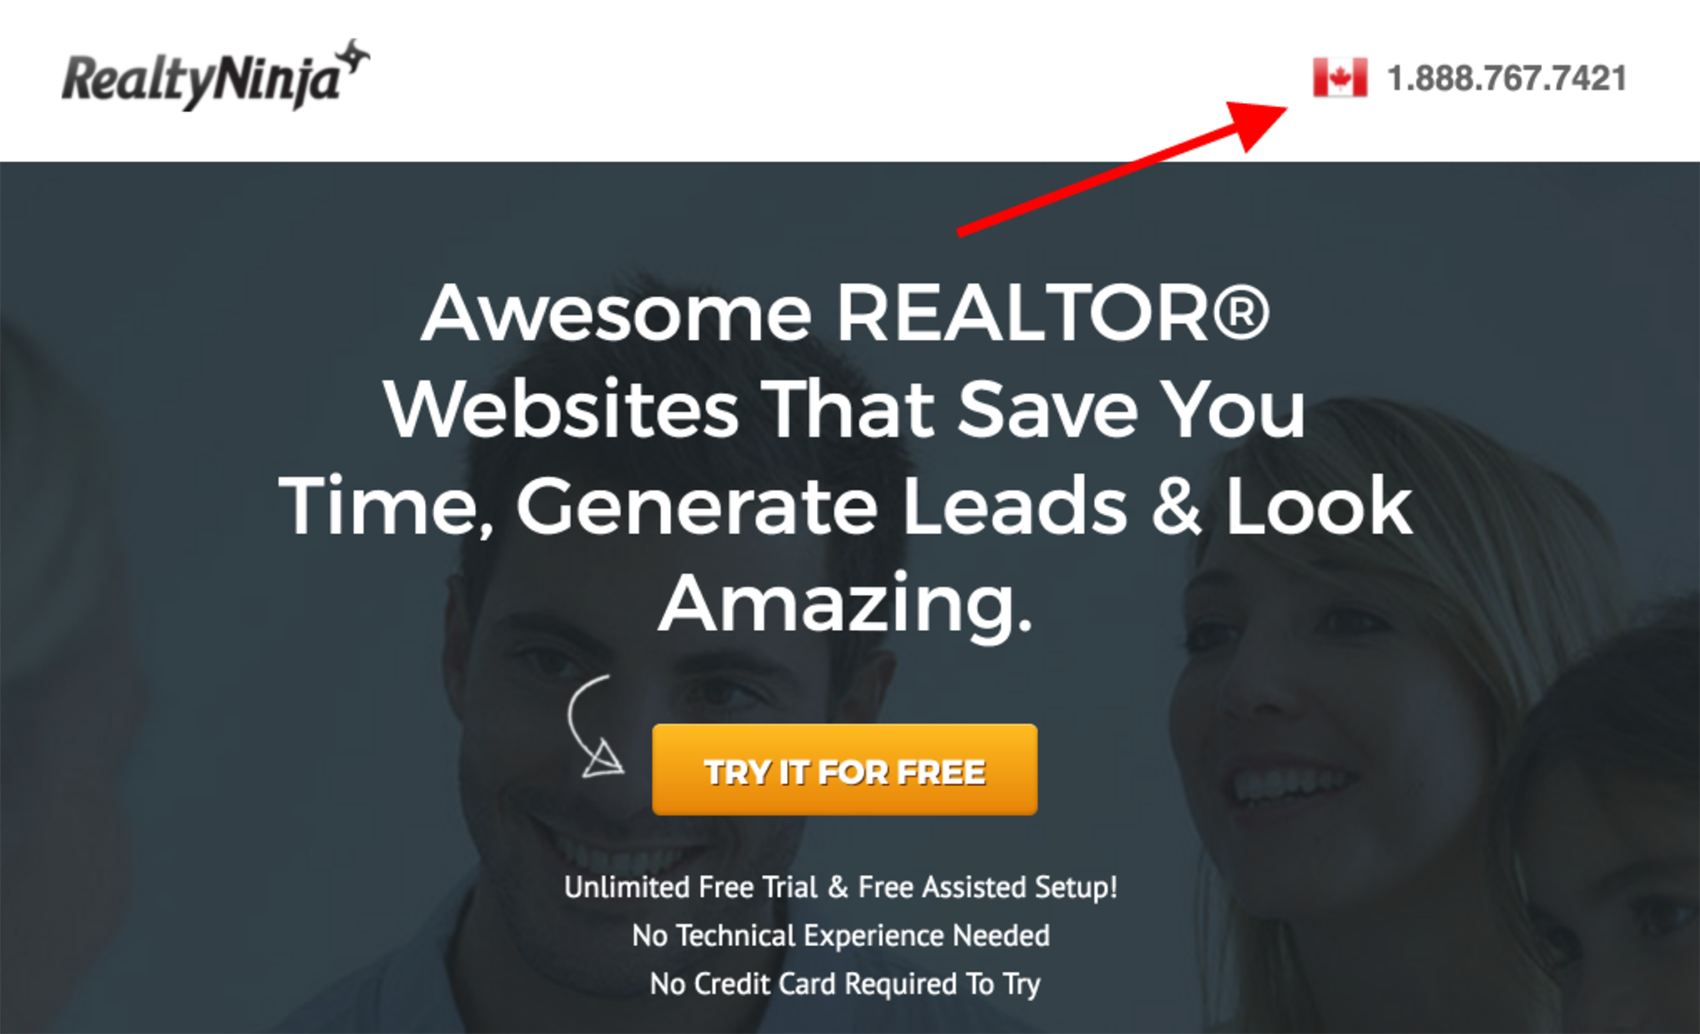 real estate landing page - contact info